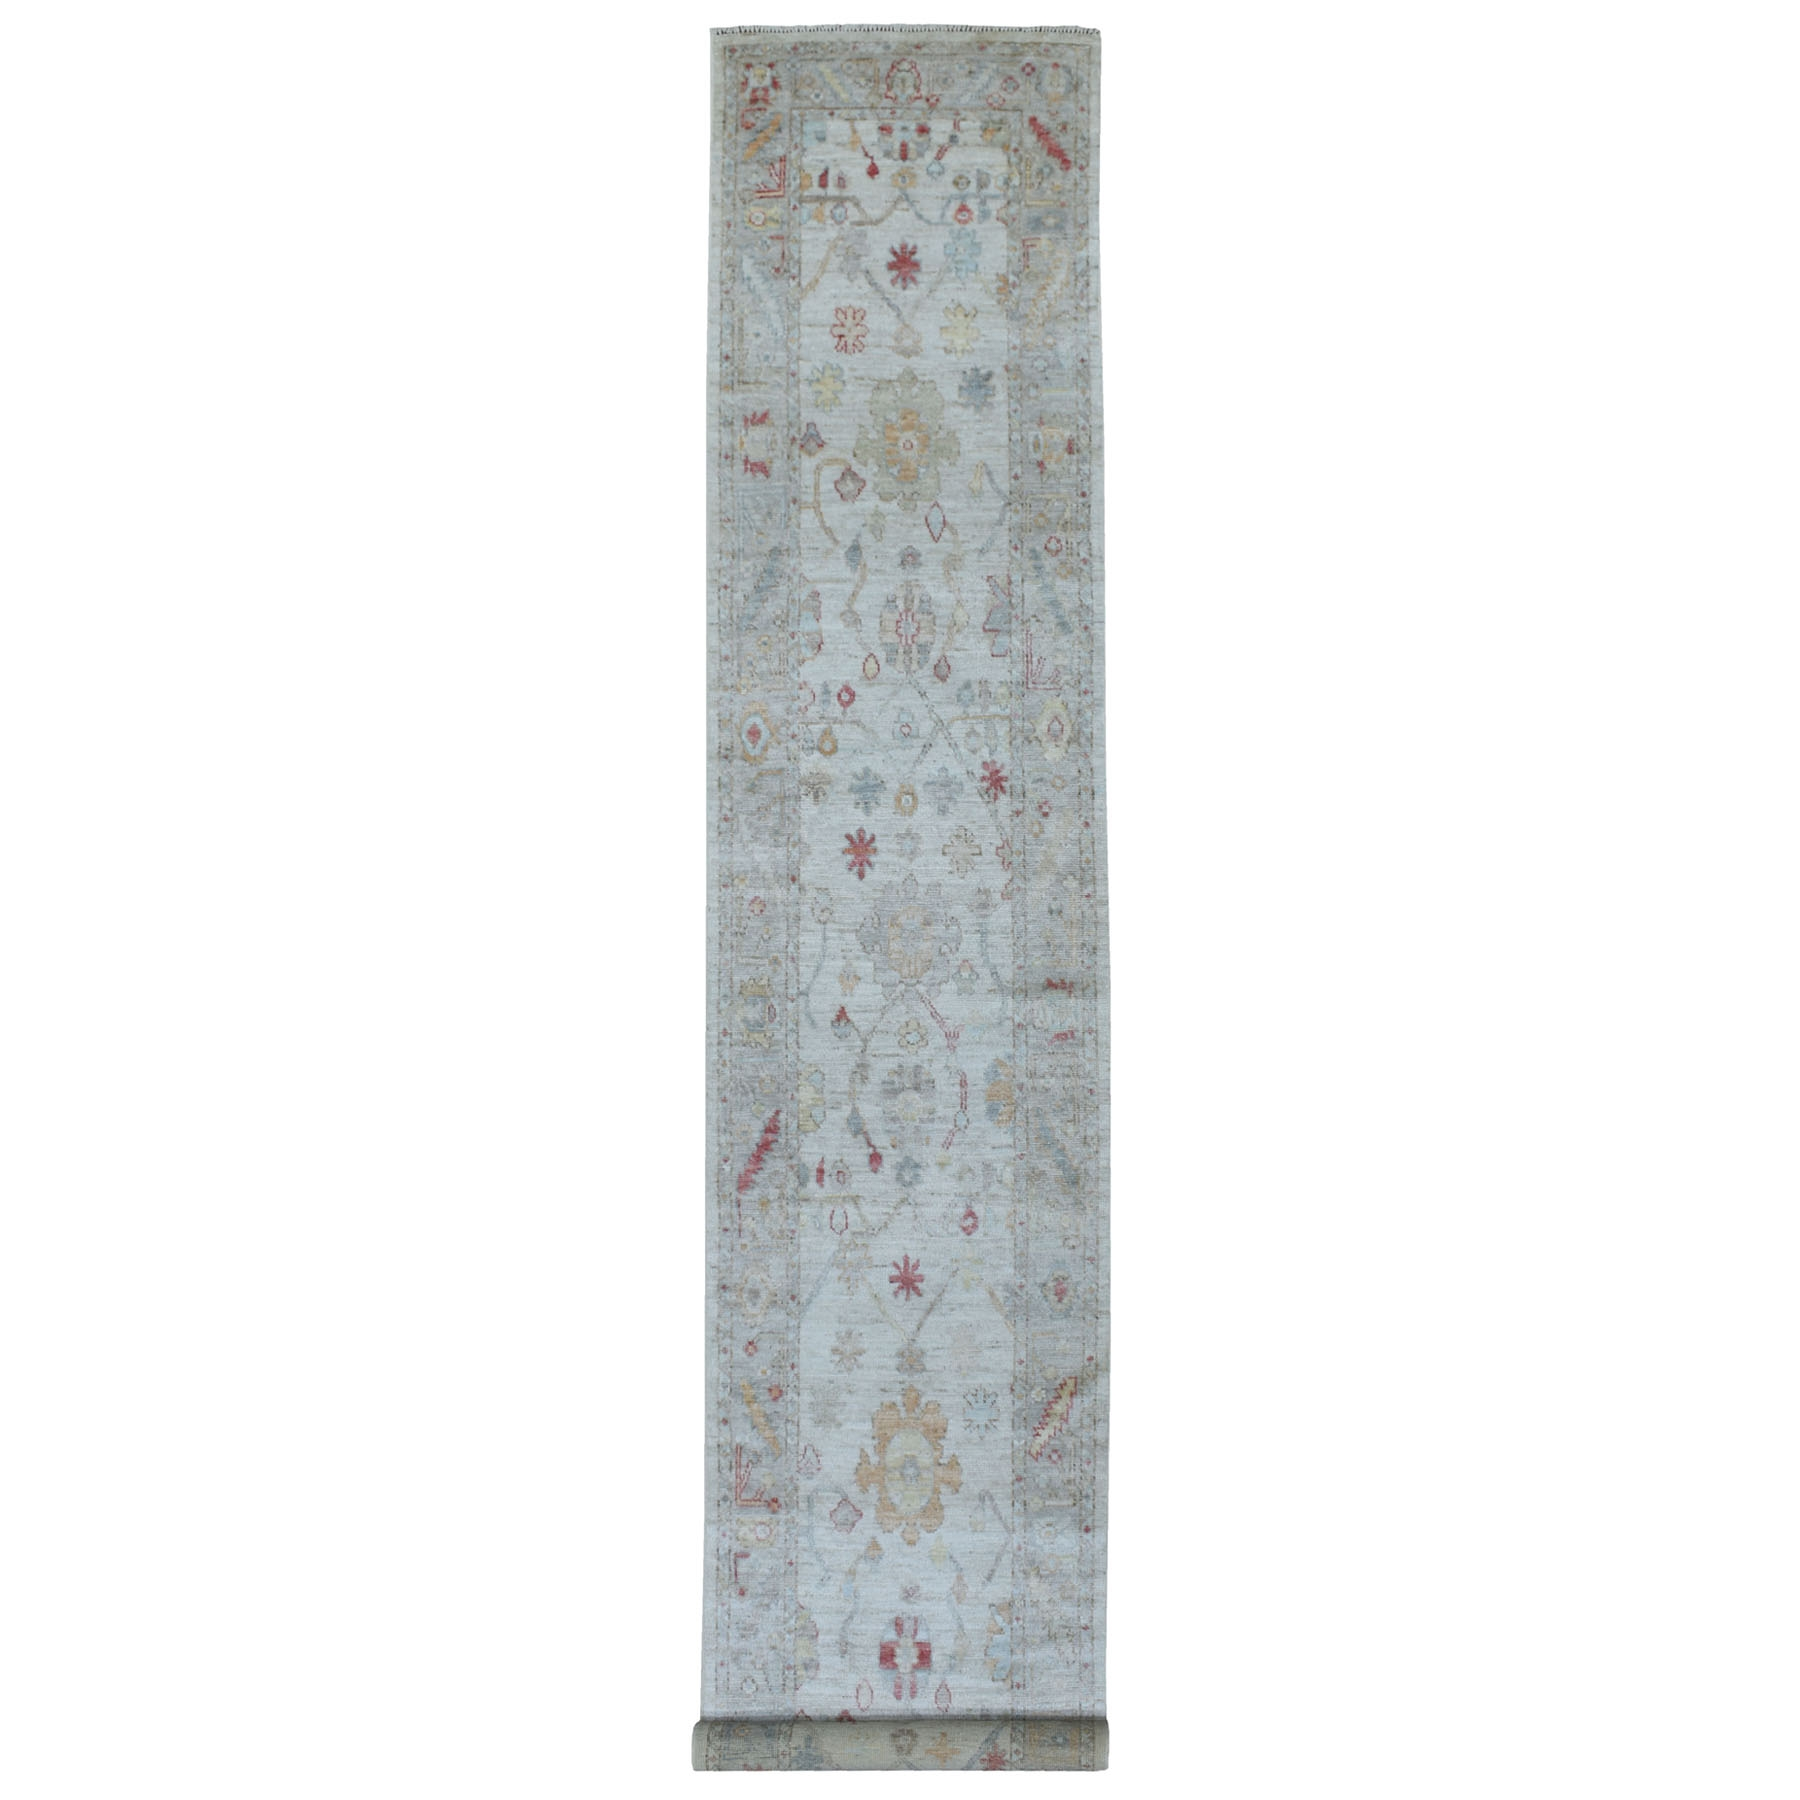 """2'10""""X16' Washed Out Gray Angora Oushak Soft To The Touch Wool Pile Hand Knotted Oriental Xl Runner Rug moae608b"""